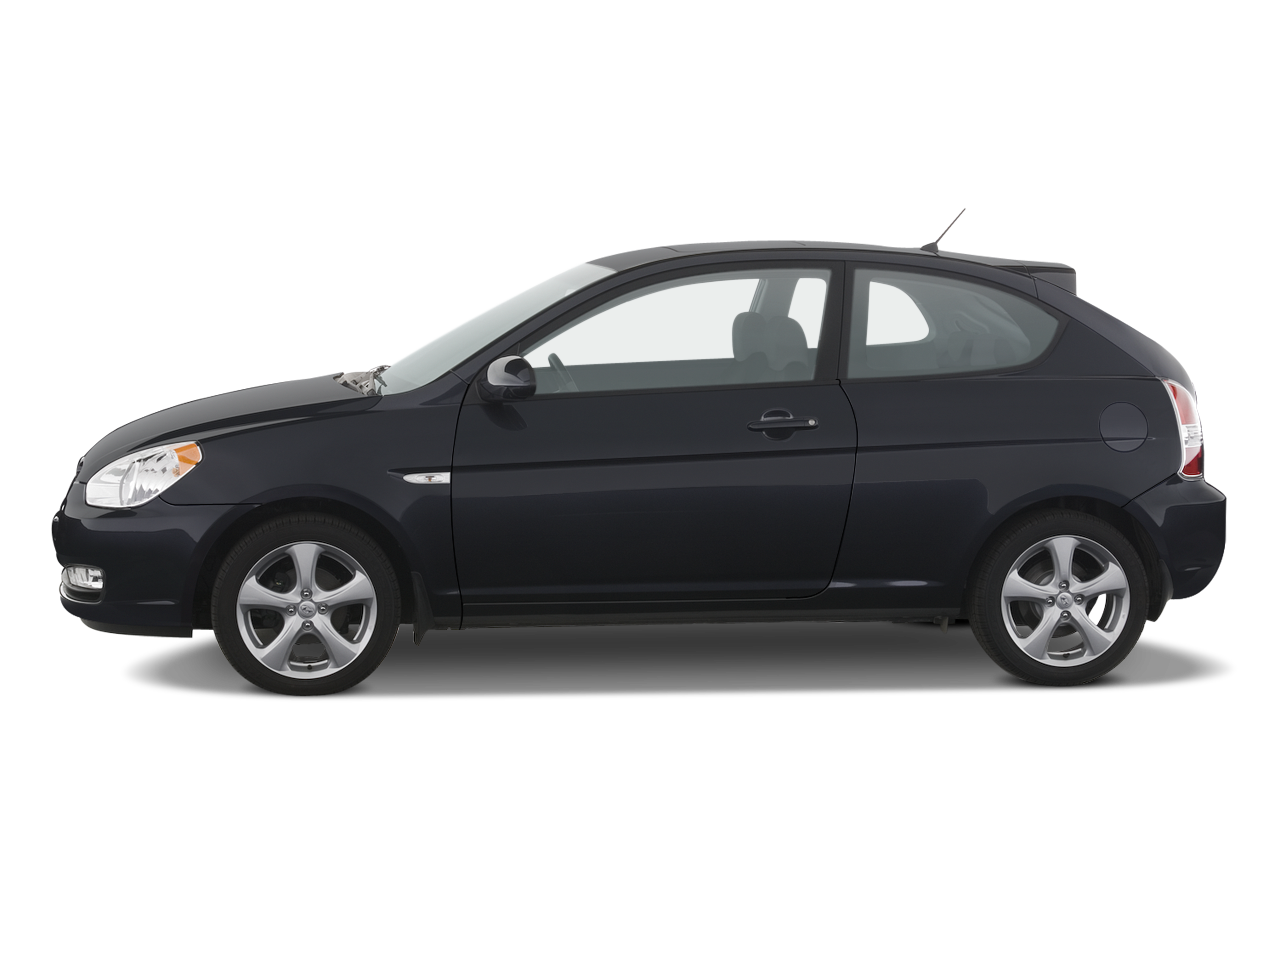 2008 hyundai accent se hyundai subcompact hatchback. Black Bedroom Furniture Sets. Home Design Ideas